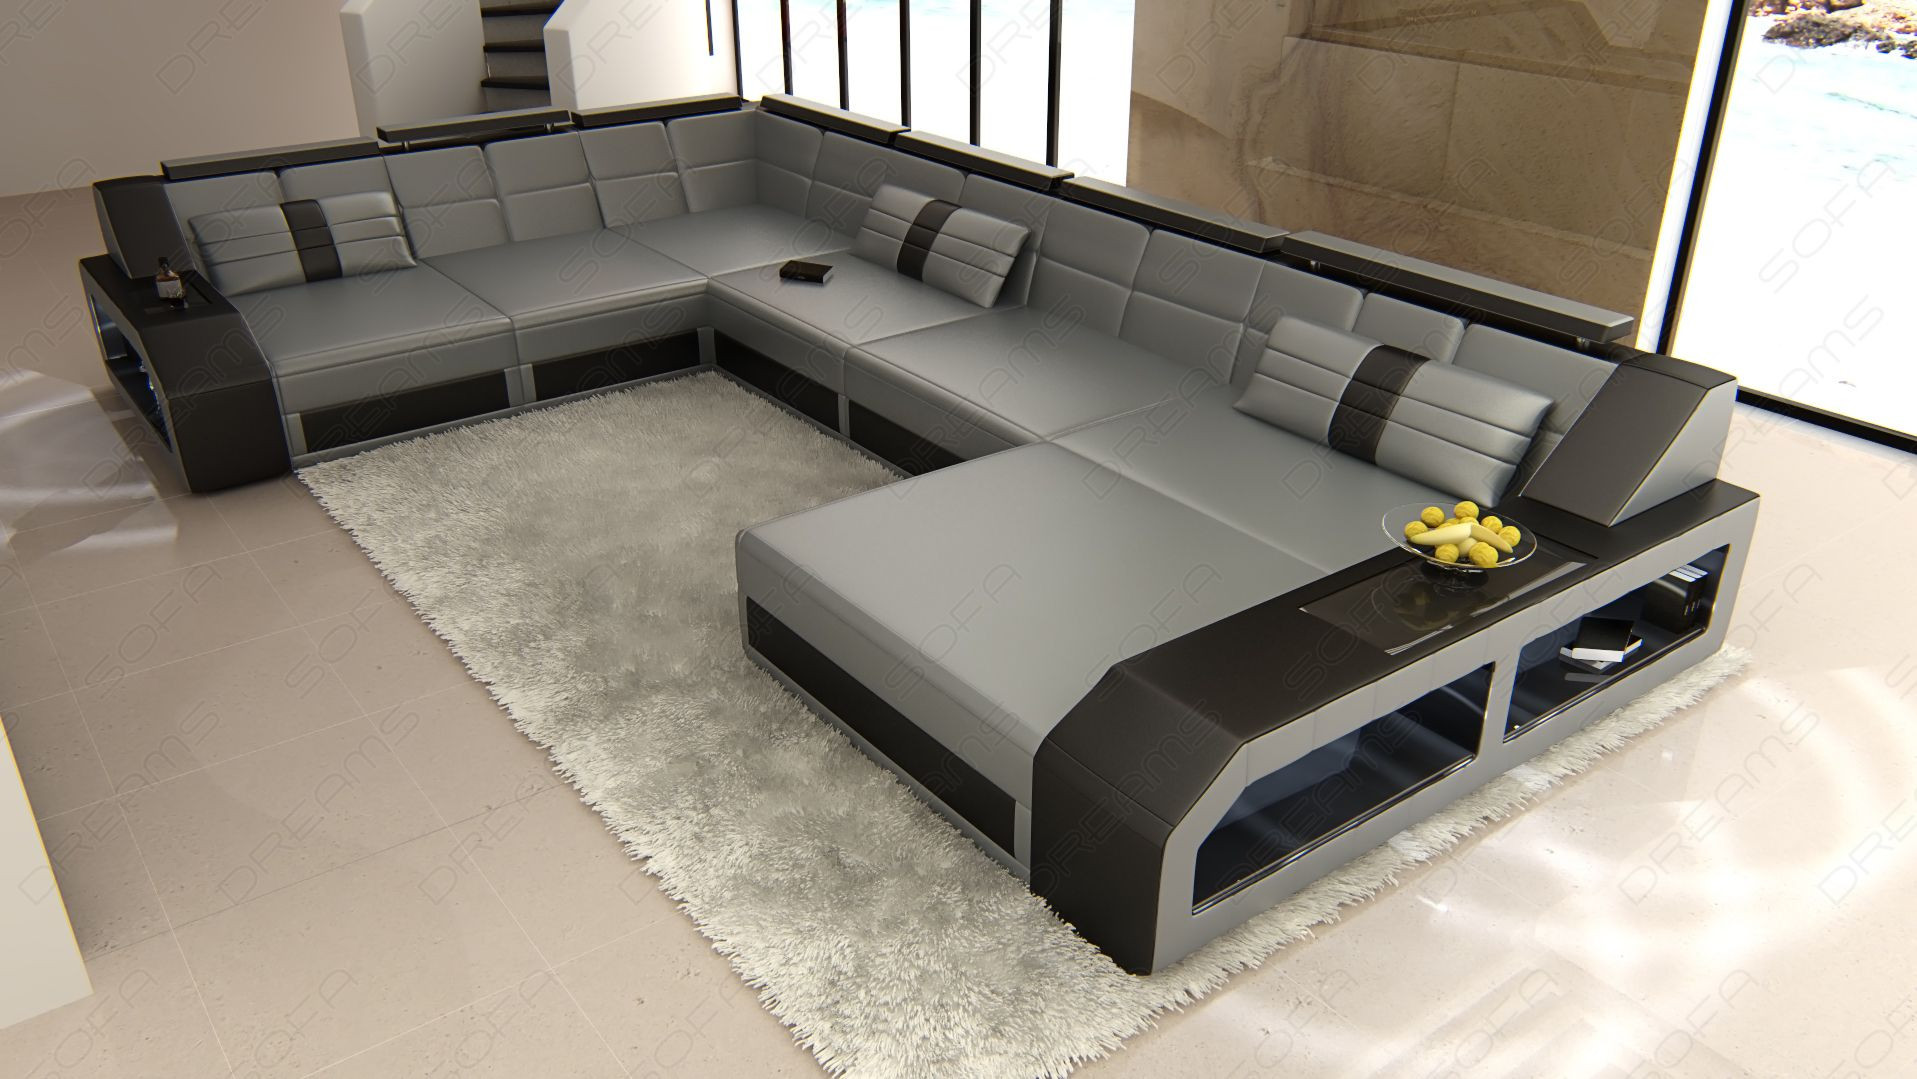 XL Leather Sectional Sofa with LED lights grey-black